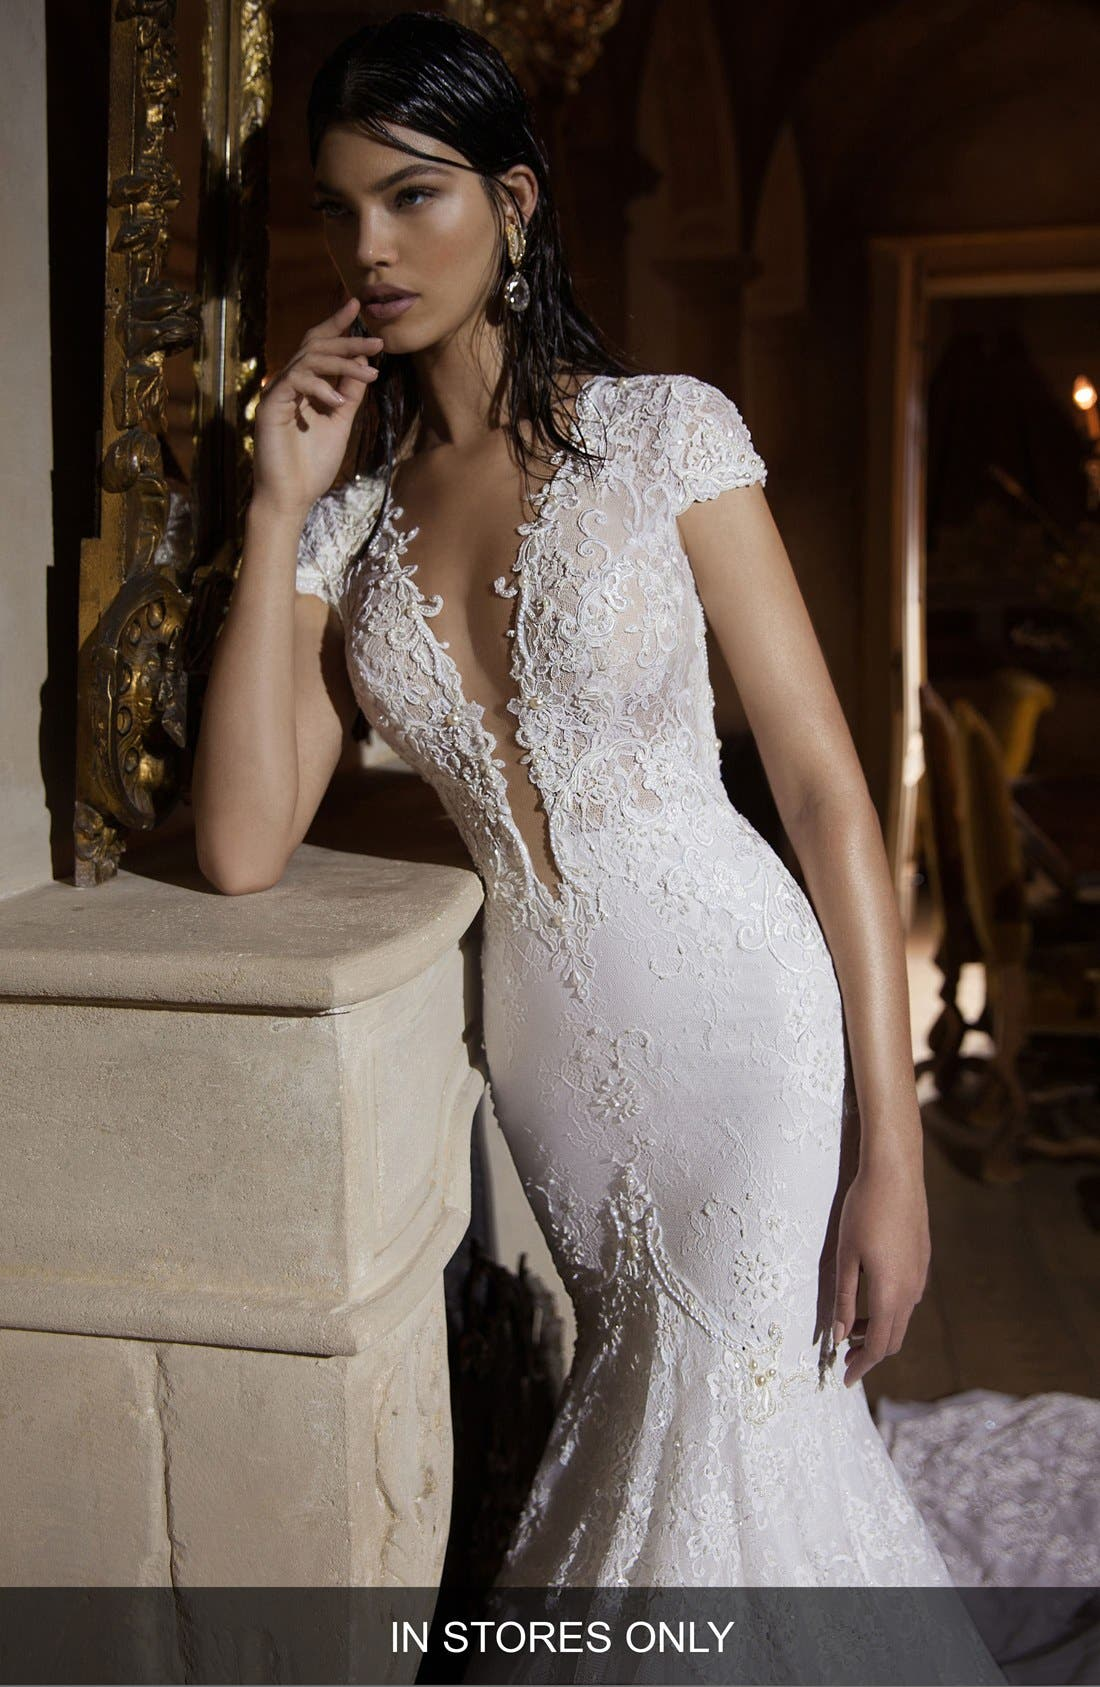 Plunging V-Neck Cap Sleeve Lace Mermaid Gown,                             Main thumbnail 1, color,                             IVORY